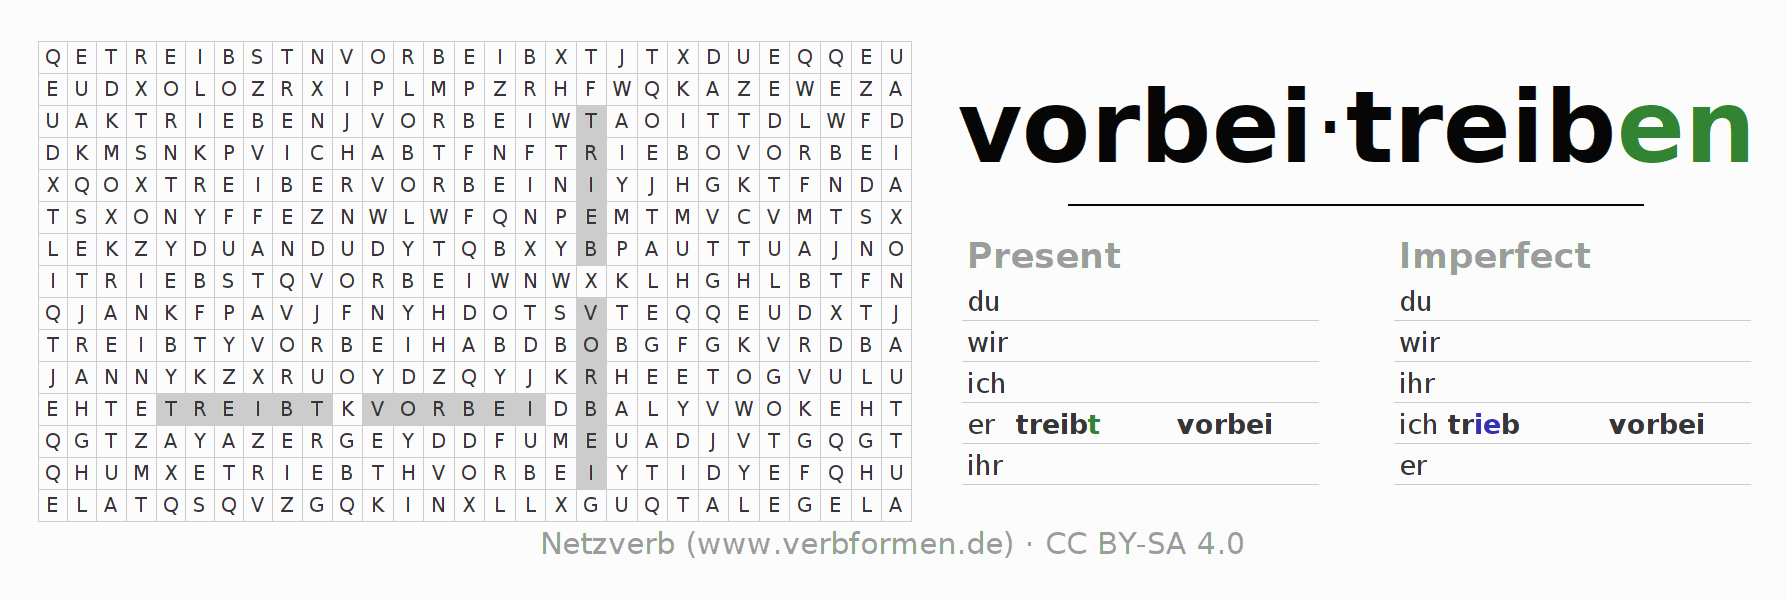 Word search puzzle for the conjugation of the verb vorbeitreiben (ist)